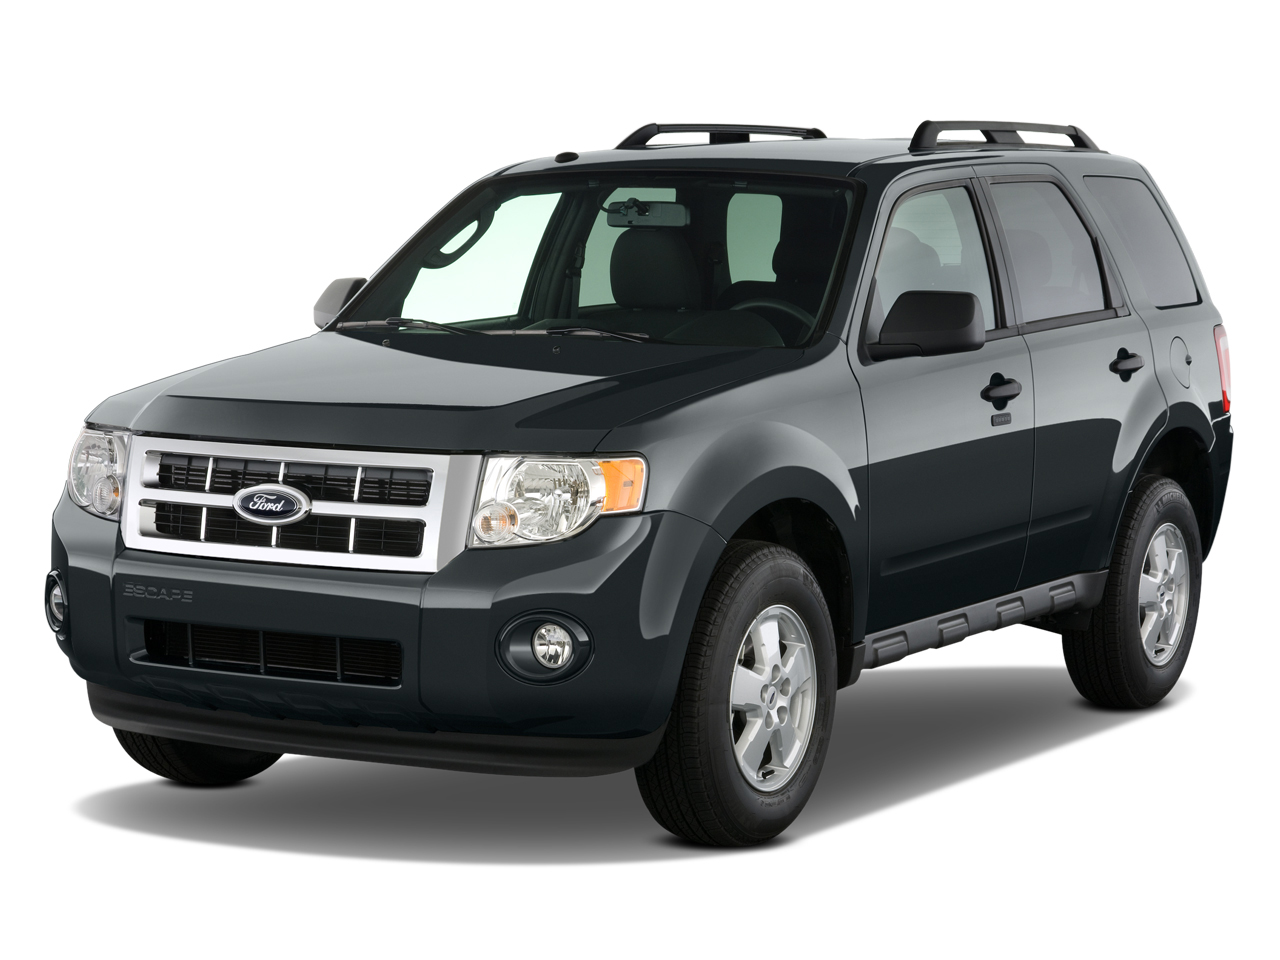 Subaru Dealers Near Me >> Picture of 2010 Ford Escape XLT